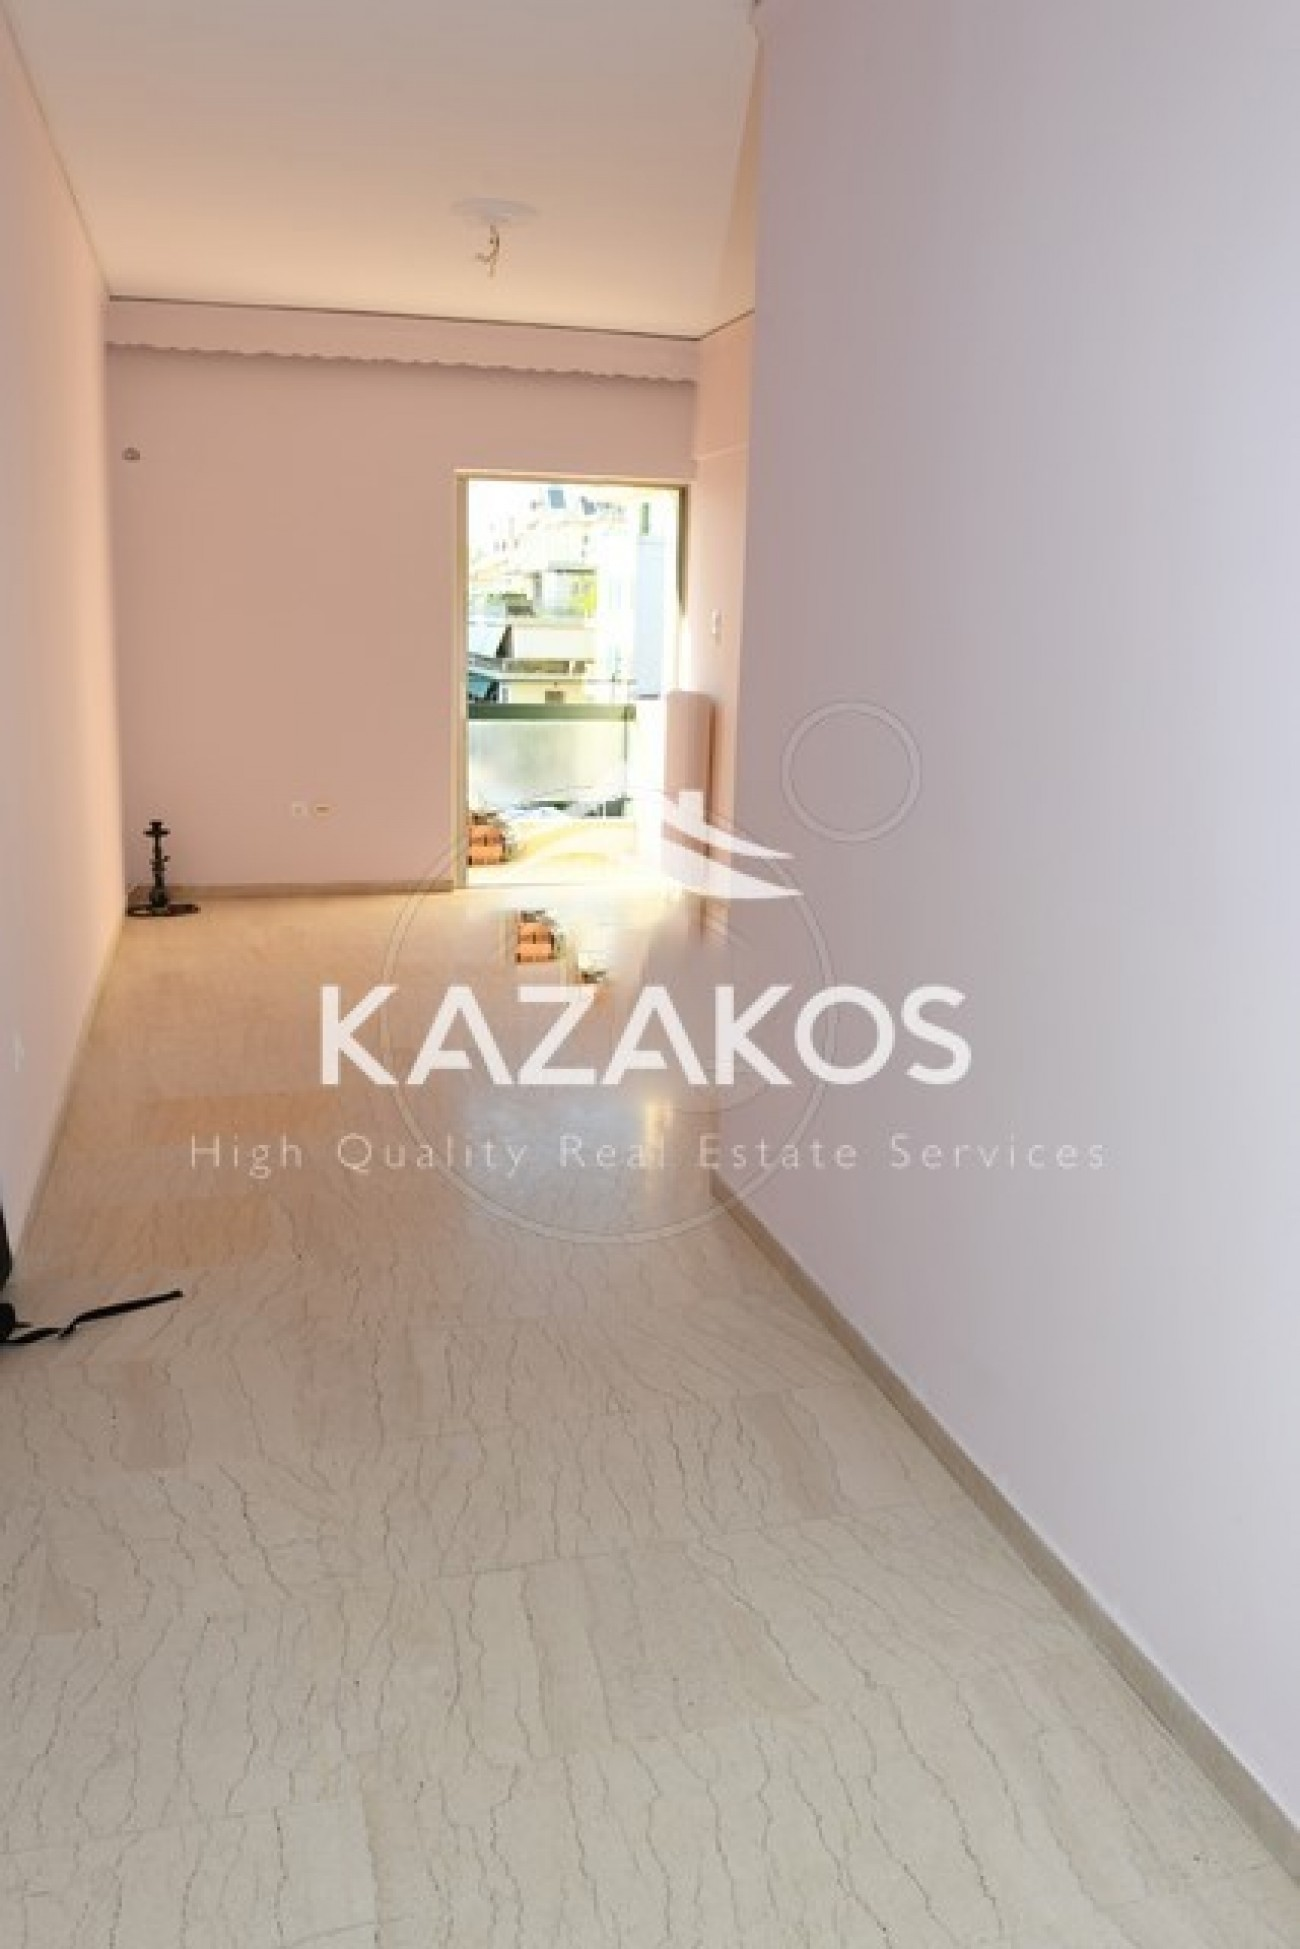 Apartment for Sale in Goudi, Athens City Center, Greece